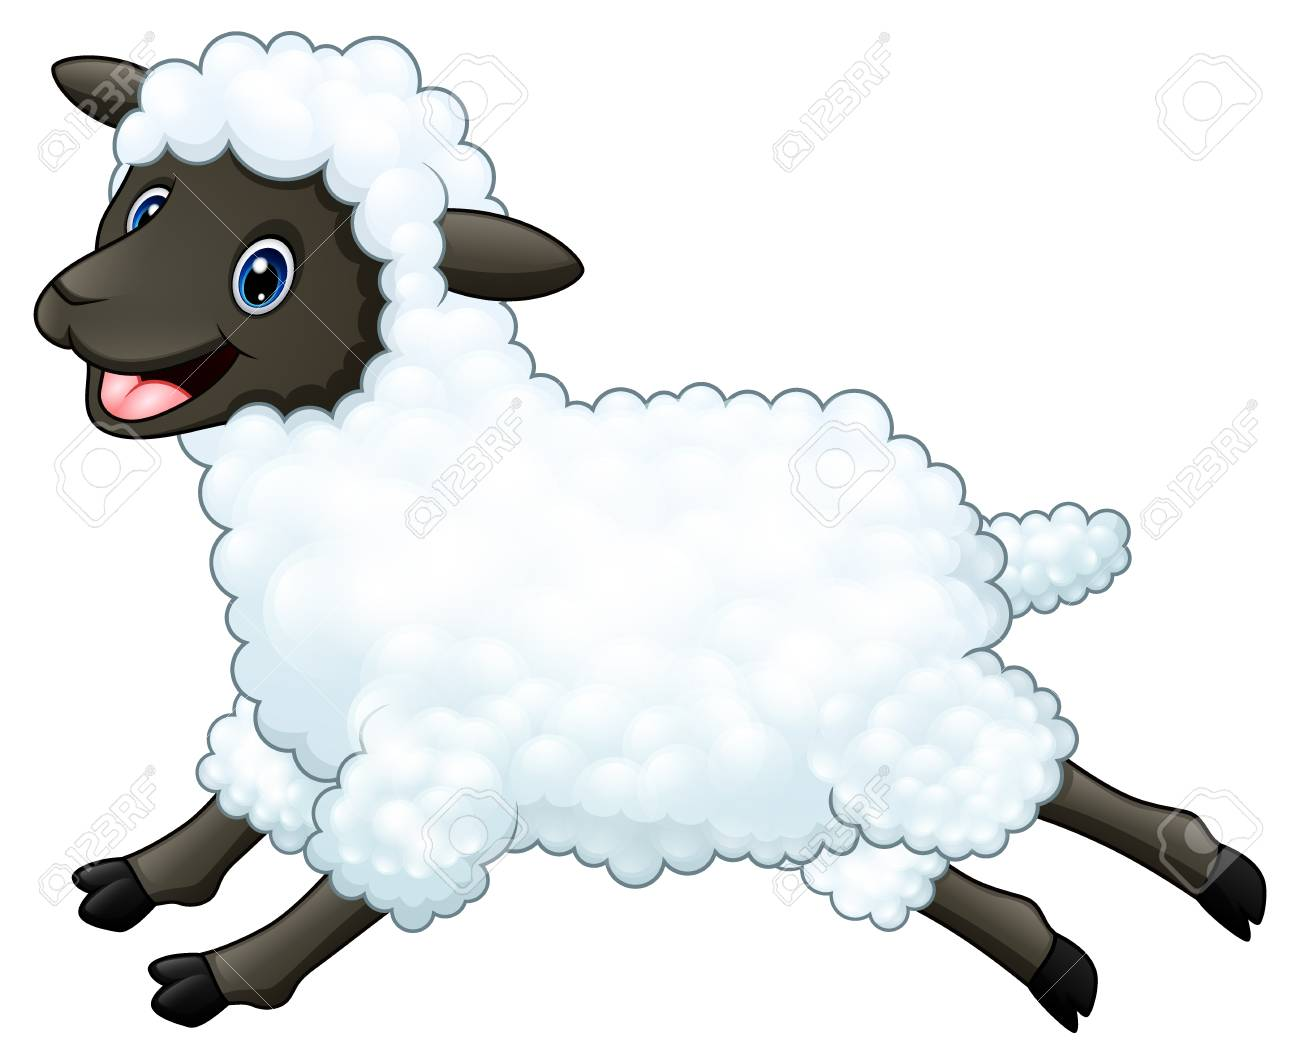 Cartoon Happy Sheep Jumping Isolated On White Background Stock Photo